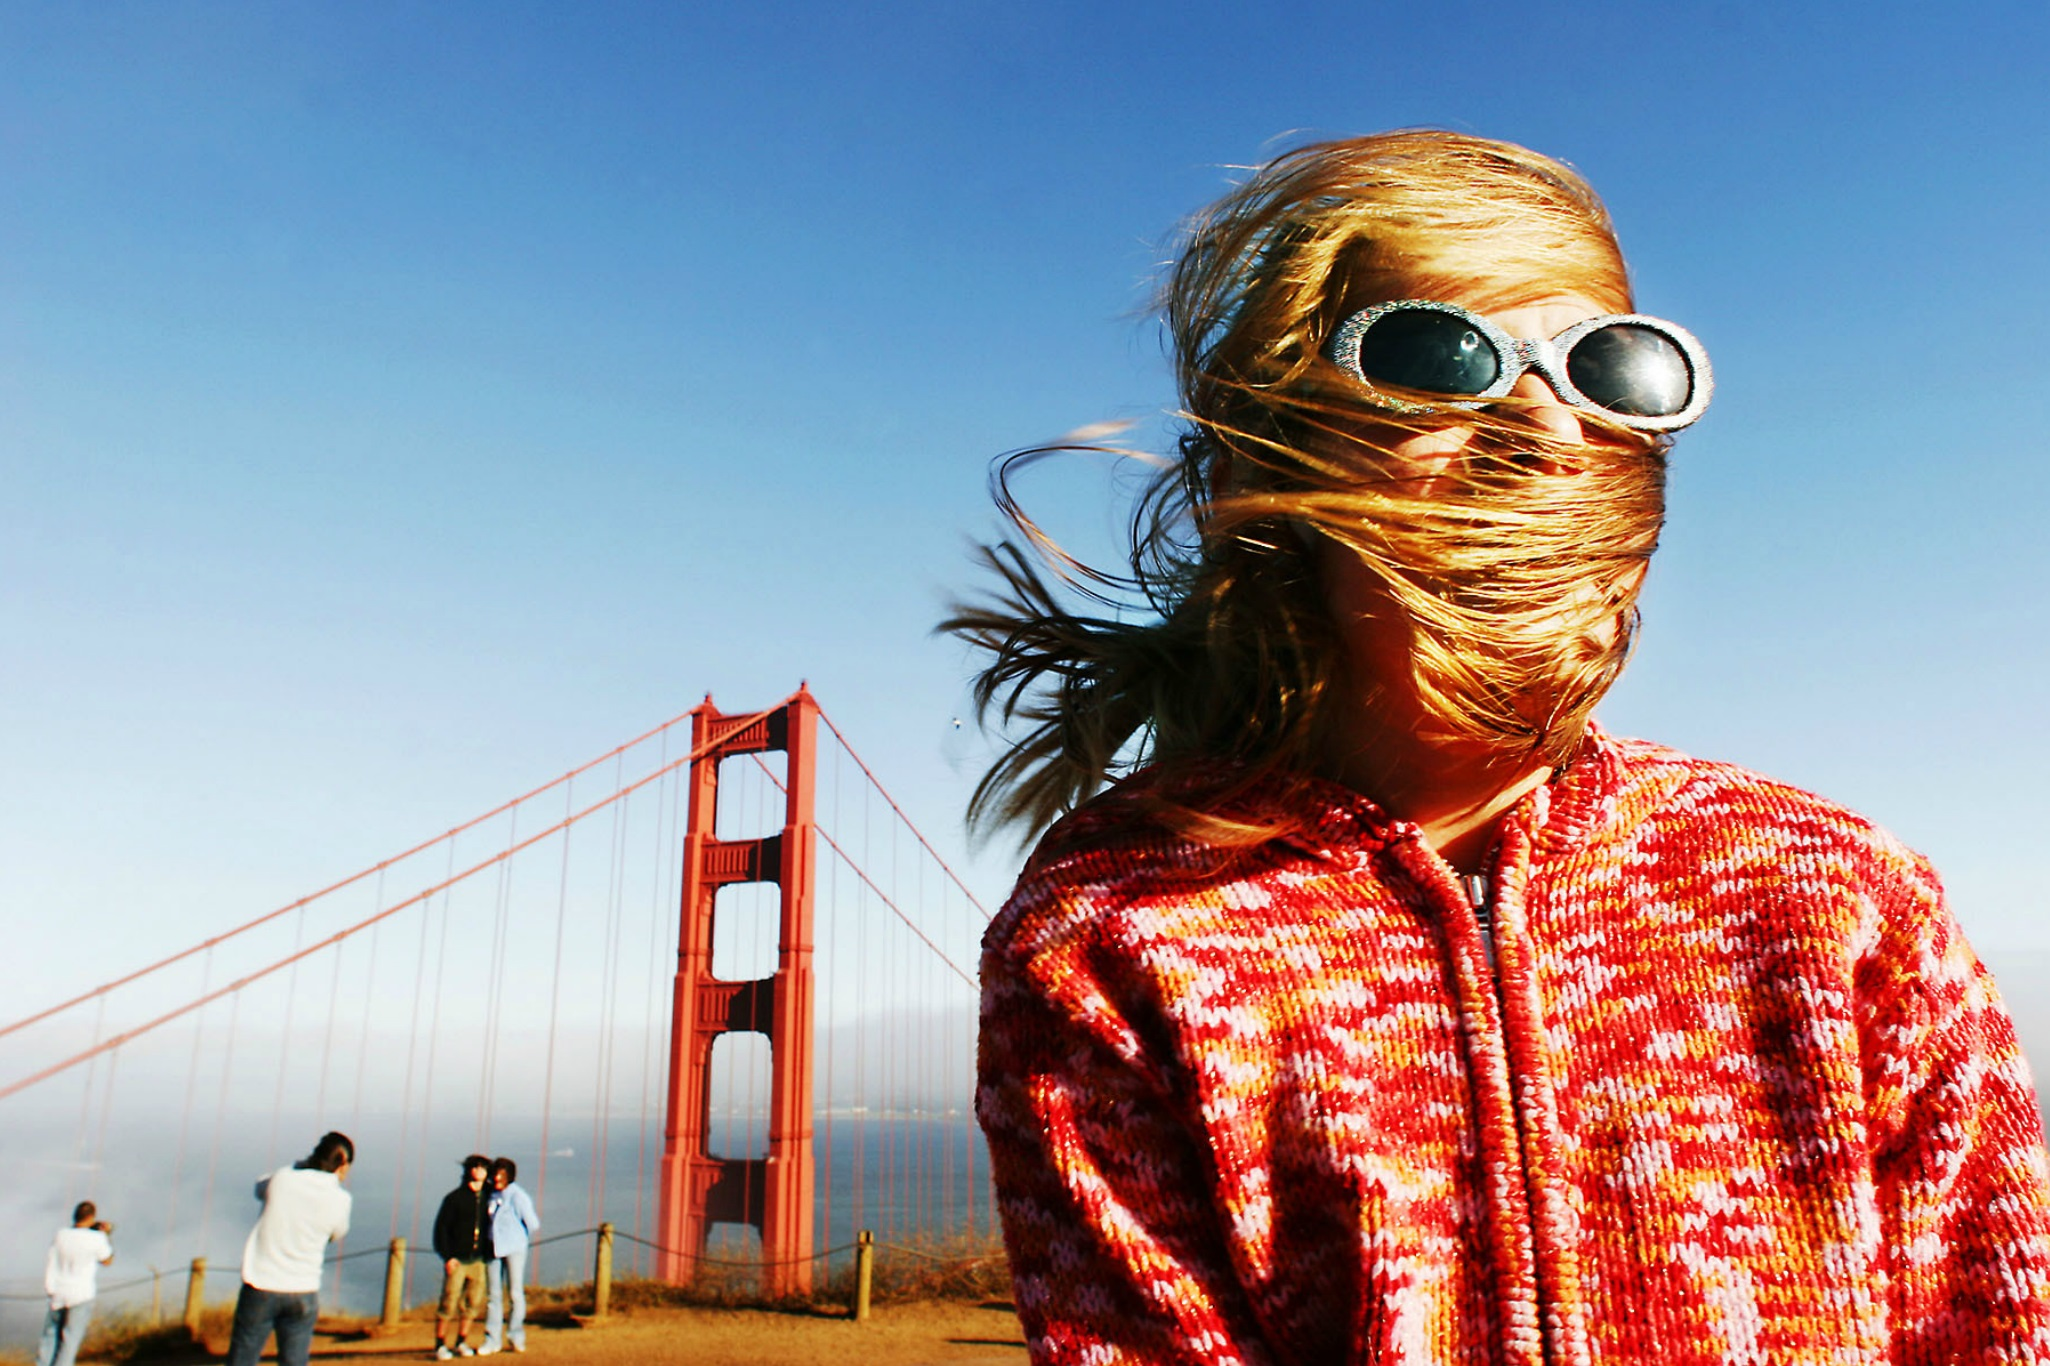 Rose on a windy day at the Golden Gate Bridge. © Mark Peterson/   ReduxPictures